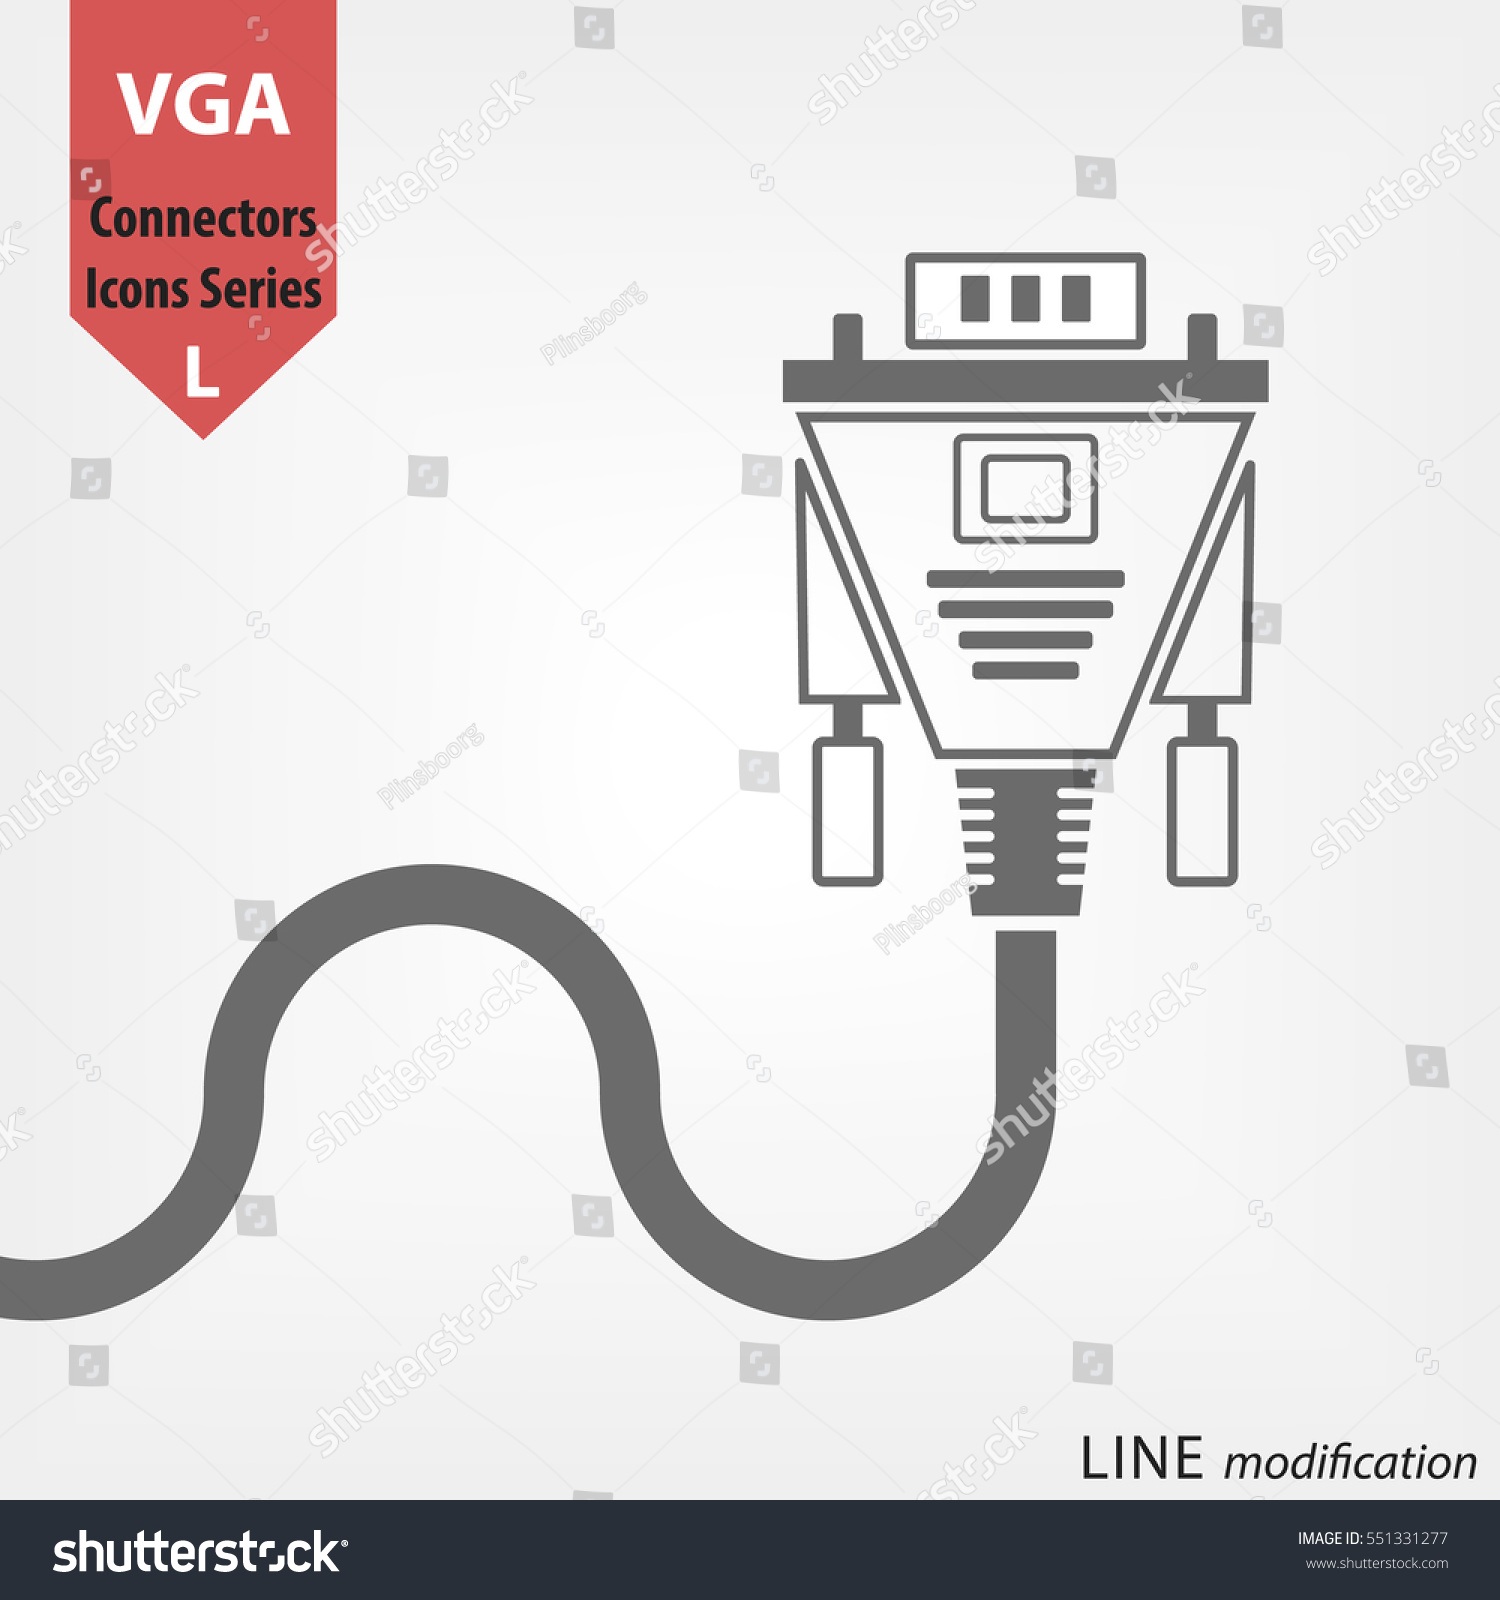 Vga Connector Line Vector Icon Digital Stock Royalty Free Wiring Diagram For Plug Video Transfer